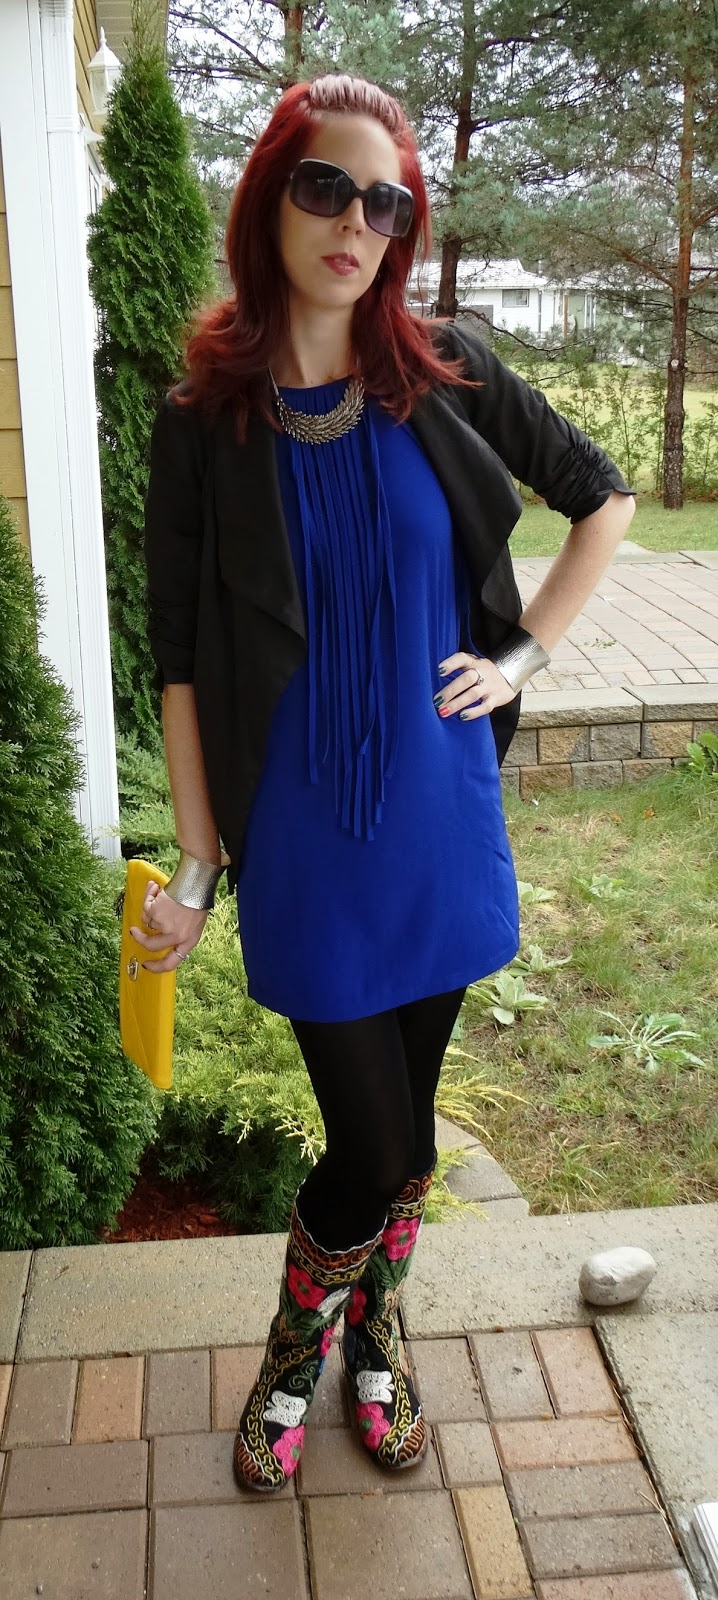 Forever 21 Deep Blue Fringe Top, Zohara Tights, Costa Blanca Jacket, Shop For Jayu Angel Necklace, Vintage Yellow Purse, H&M Sunglasses, fashion fashion blogger Toronto The Purple Scarf Melanie.ps